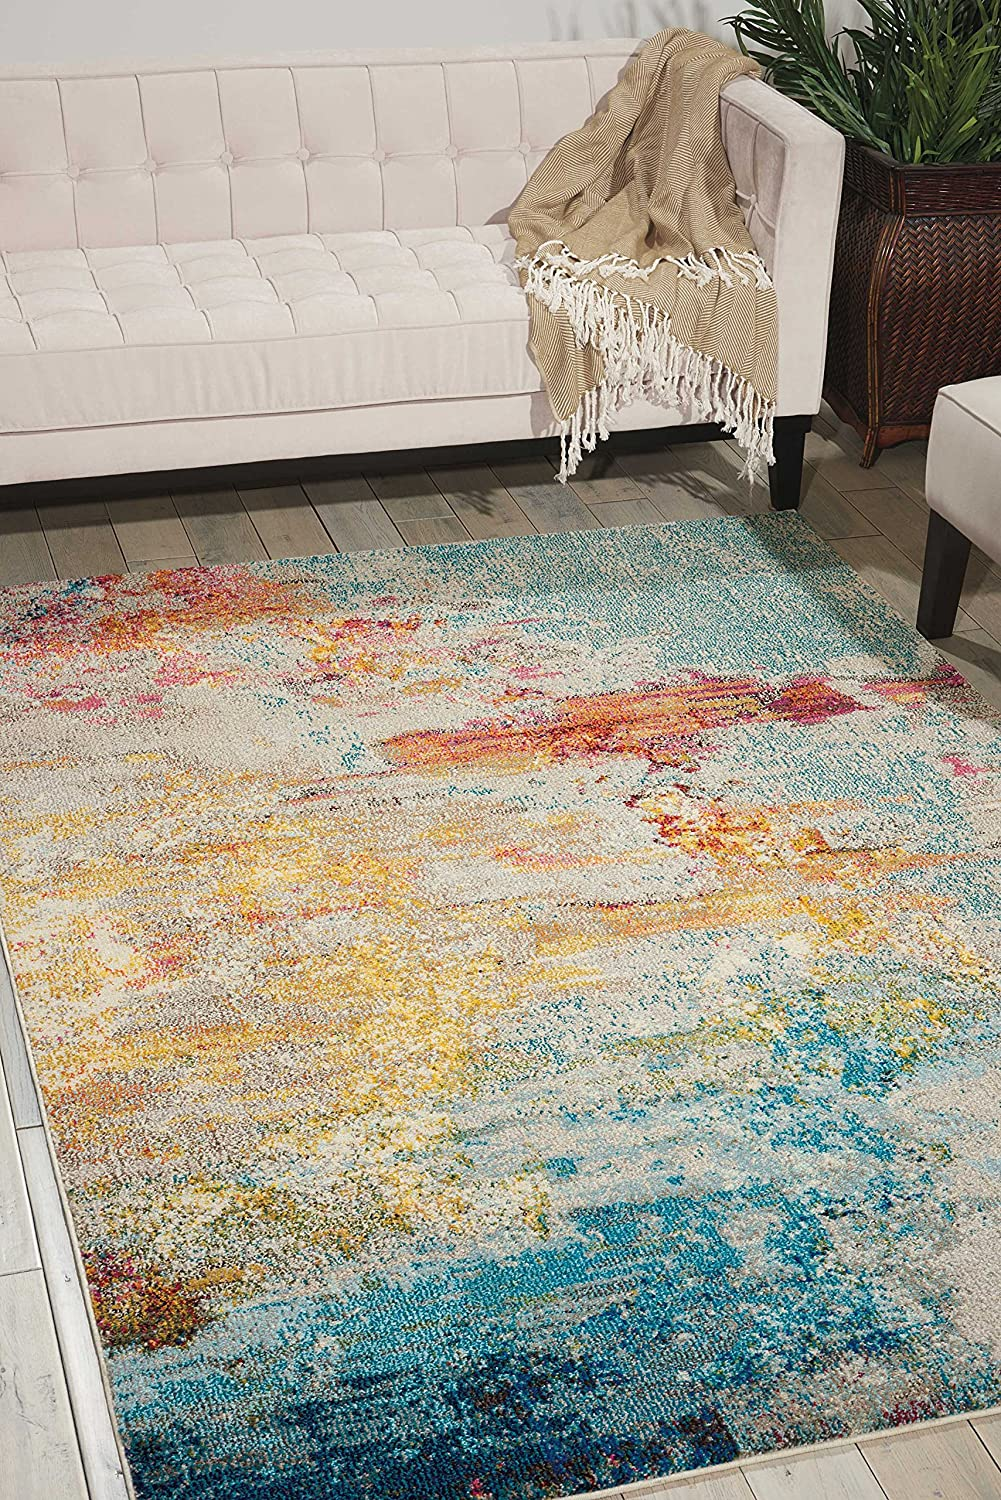 contemporary home decor - rugs